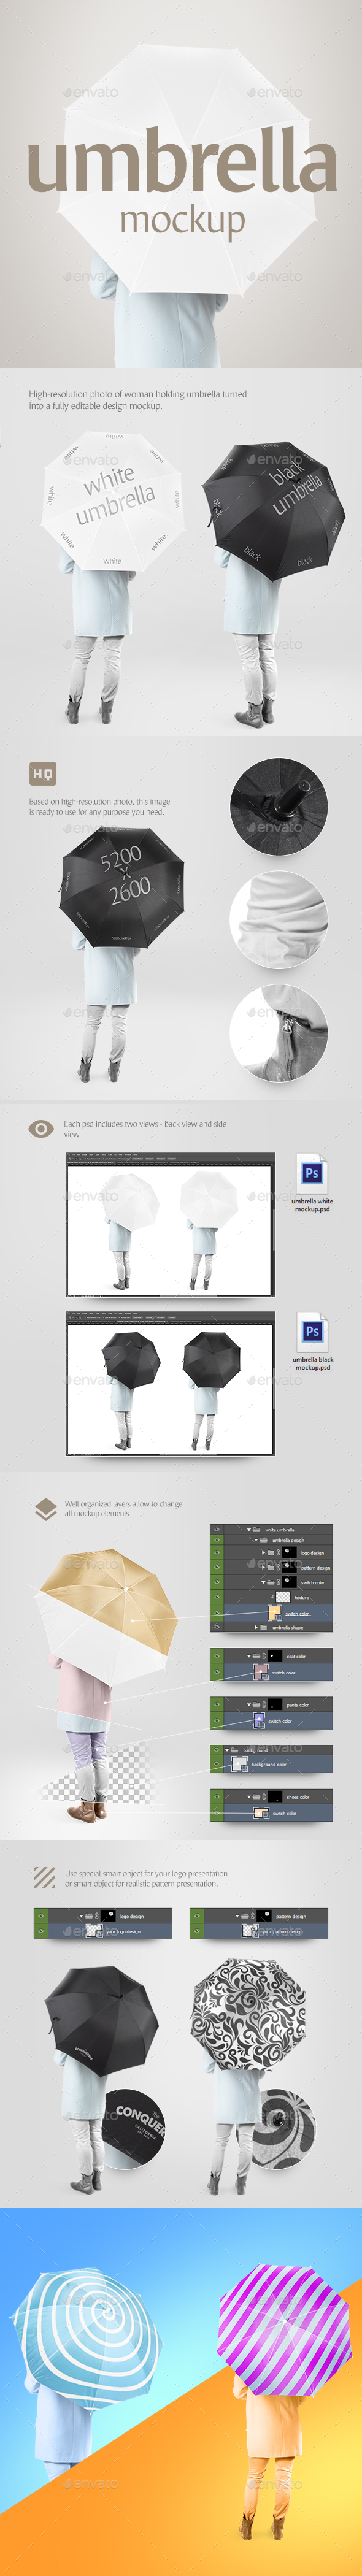 Umbrella Mockup - Miscellaneous Print